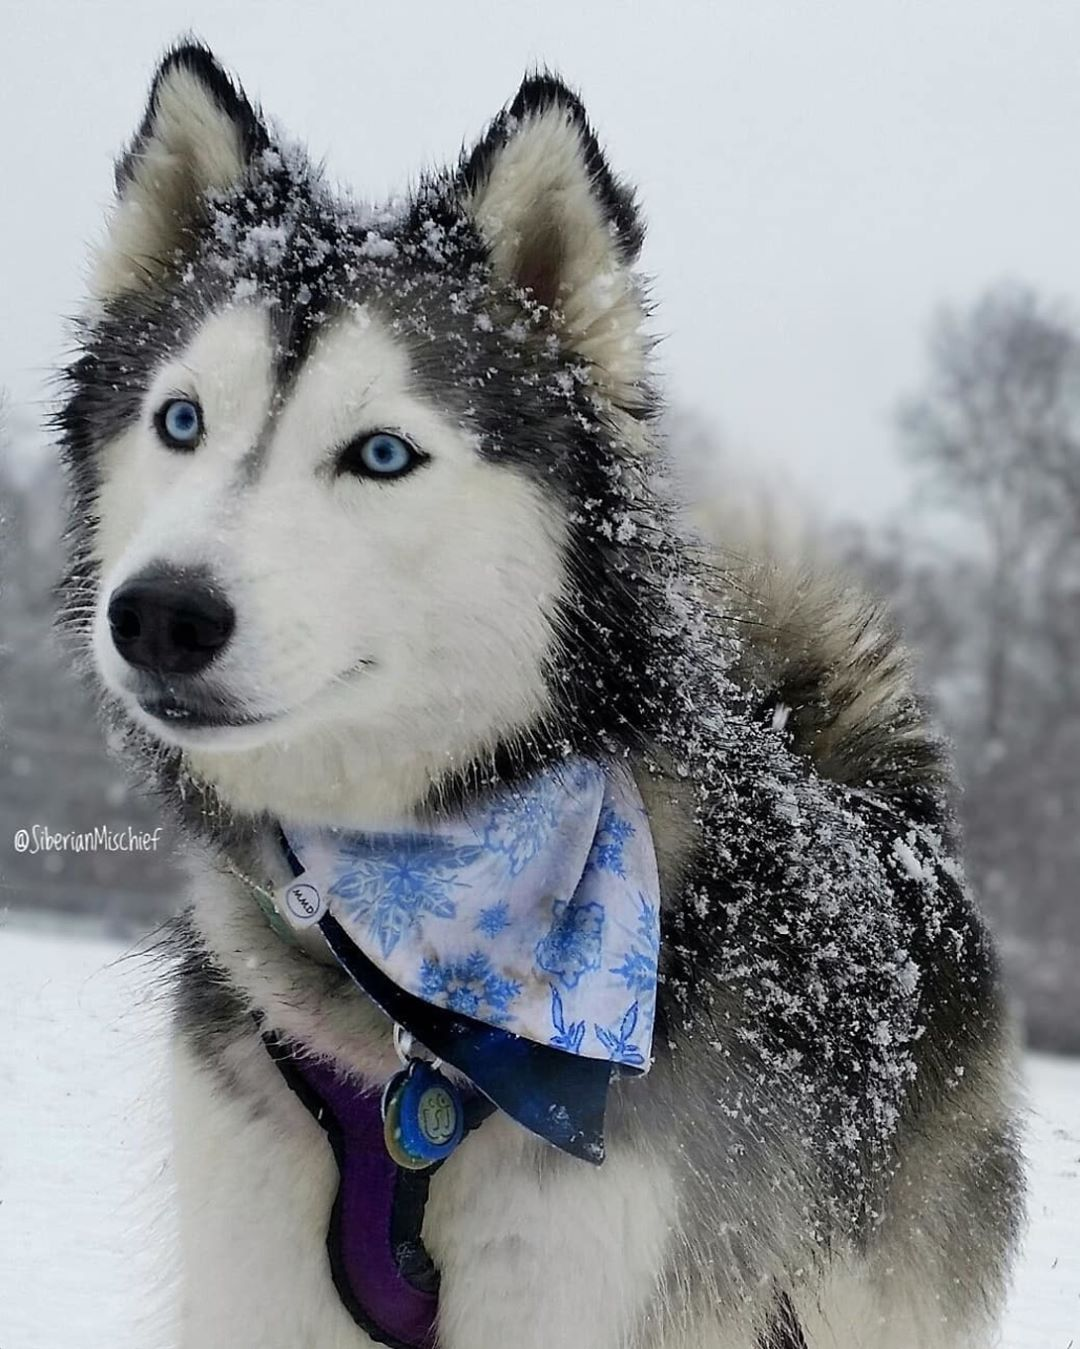 968 Likes 15 Comments The Huskies Diary Huskiesdiary On